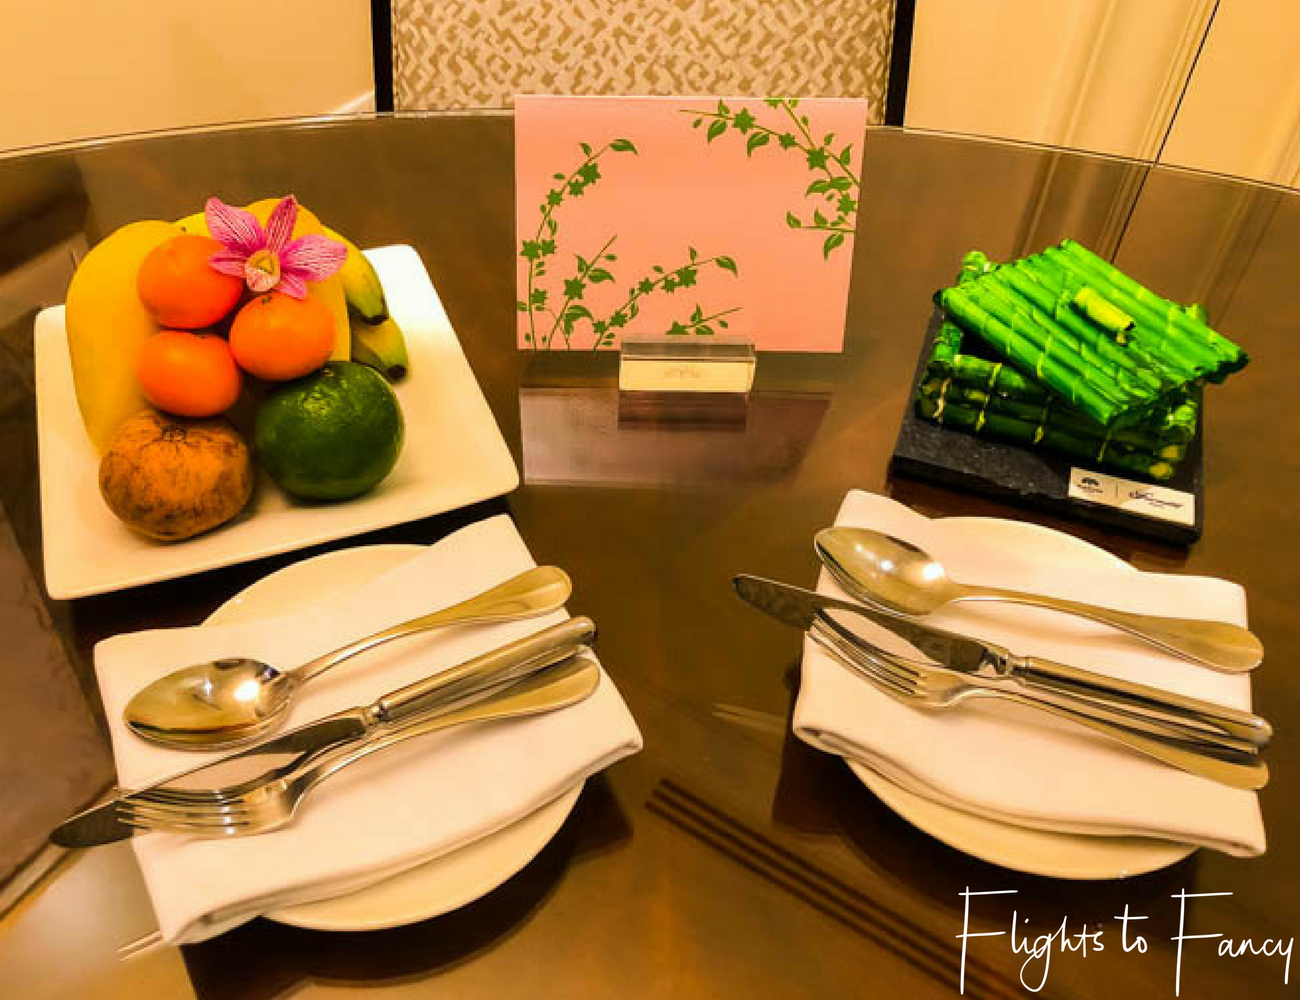 Flights To Fancy at Raffles Makati - The best place to stay in Manila